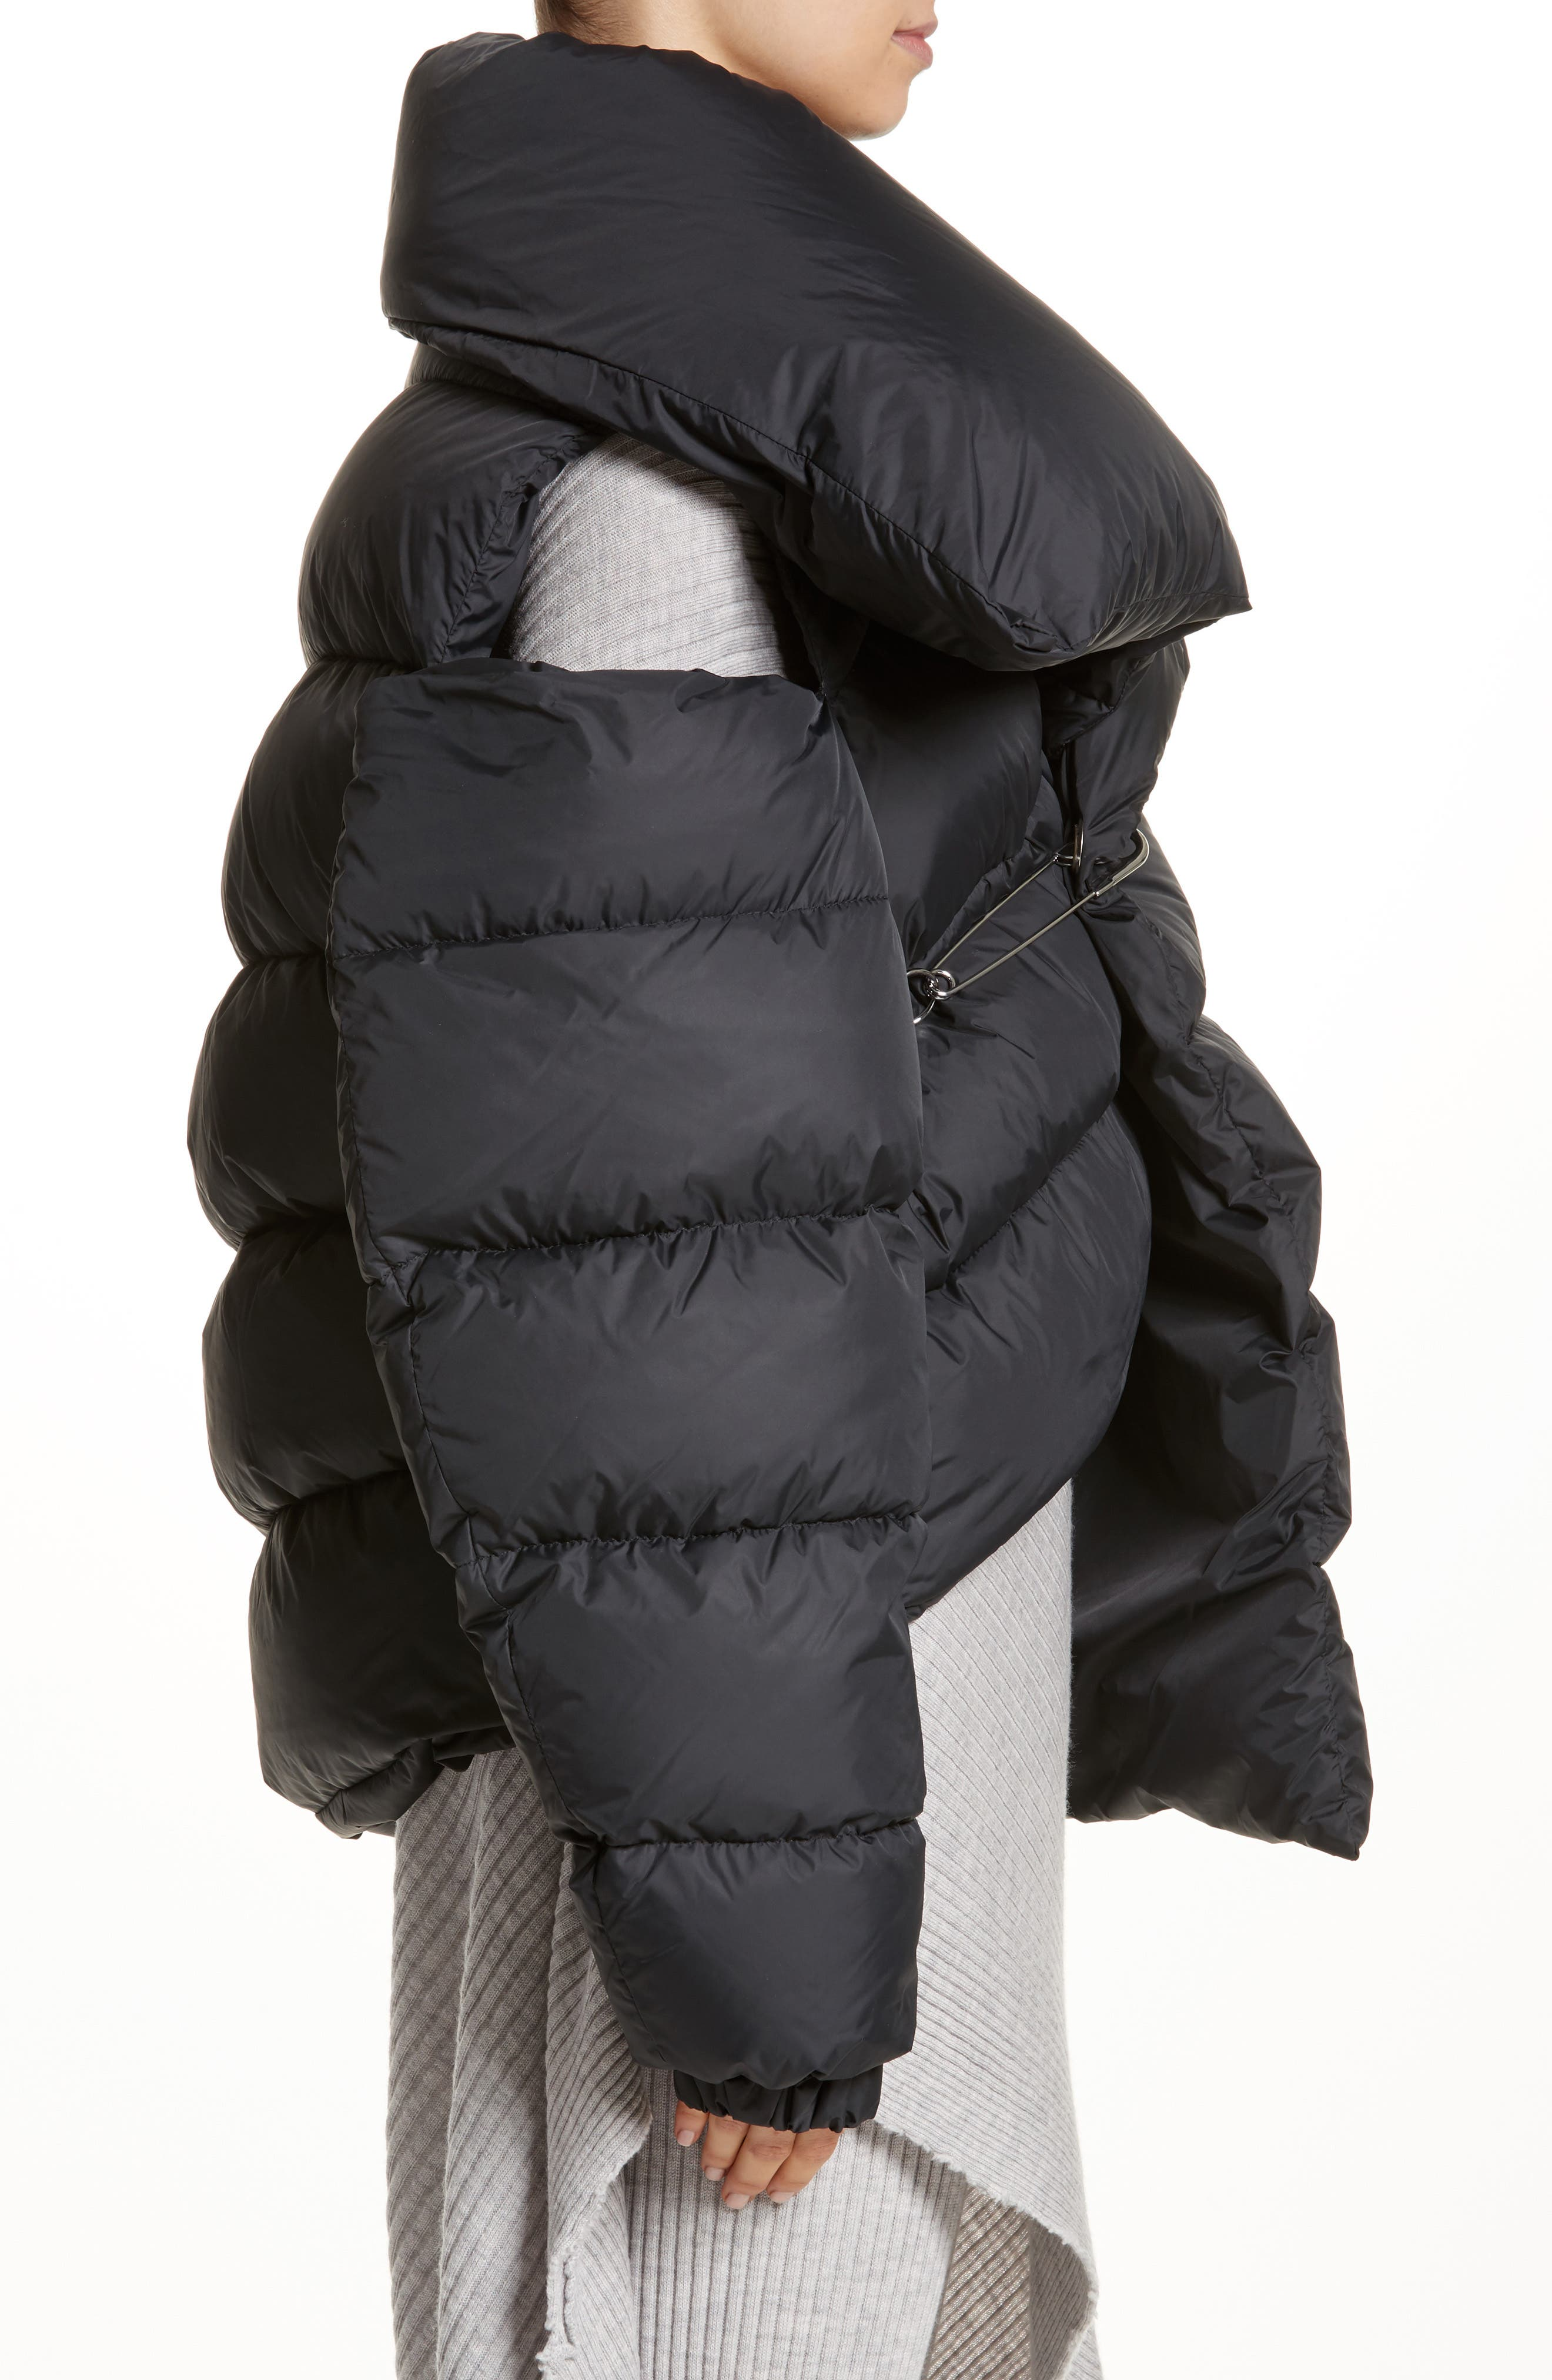 Marques'Almeida Asymmetrical Down Puffer Coat with Safety Pin Closure,                             Alternate thumbnail 3, color,                             001